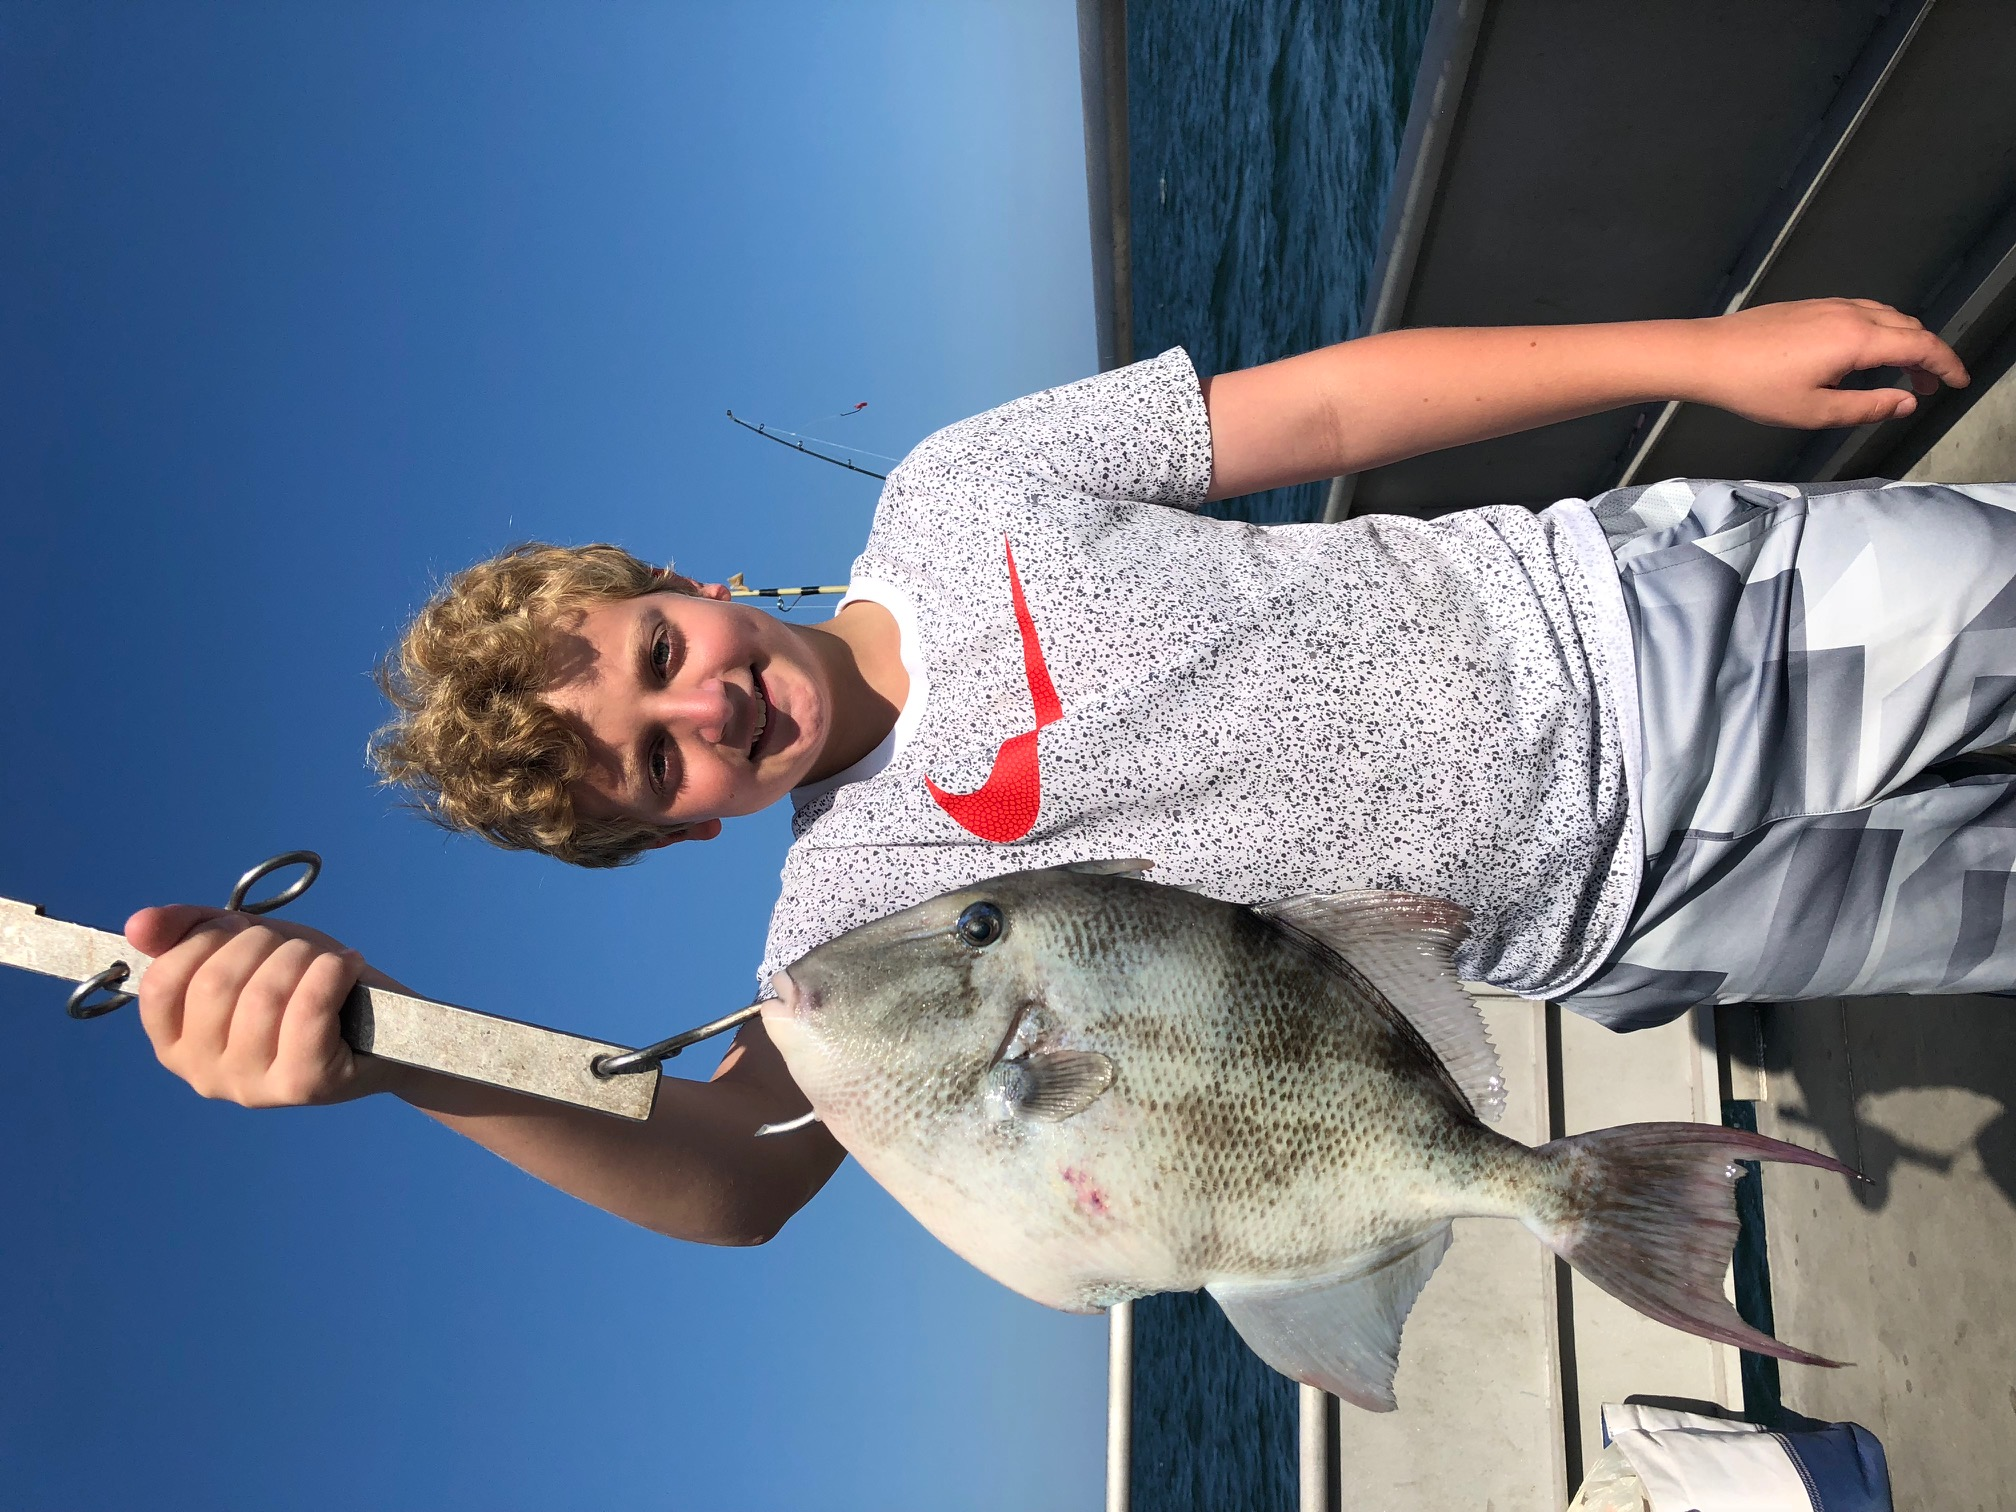 Tasty Triggerfish caught off of Wildwood Crest, New Jersey